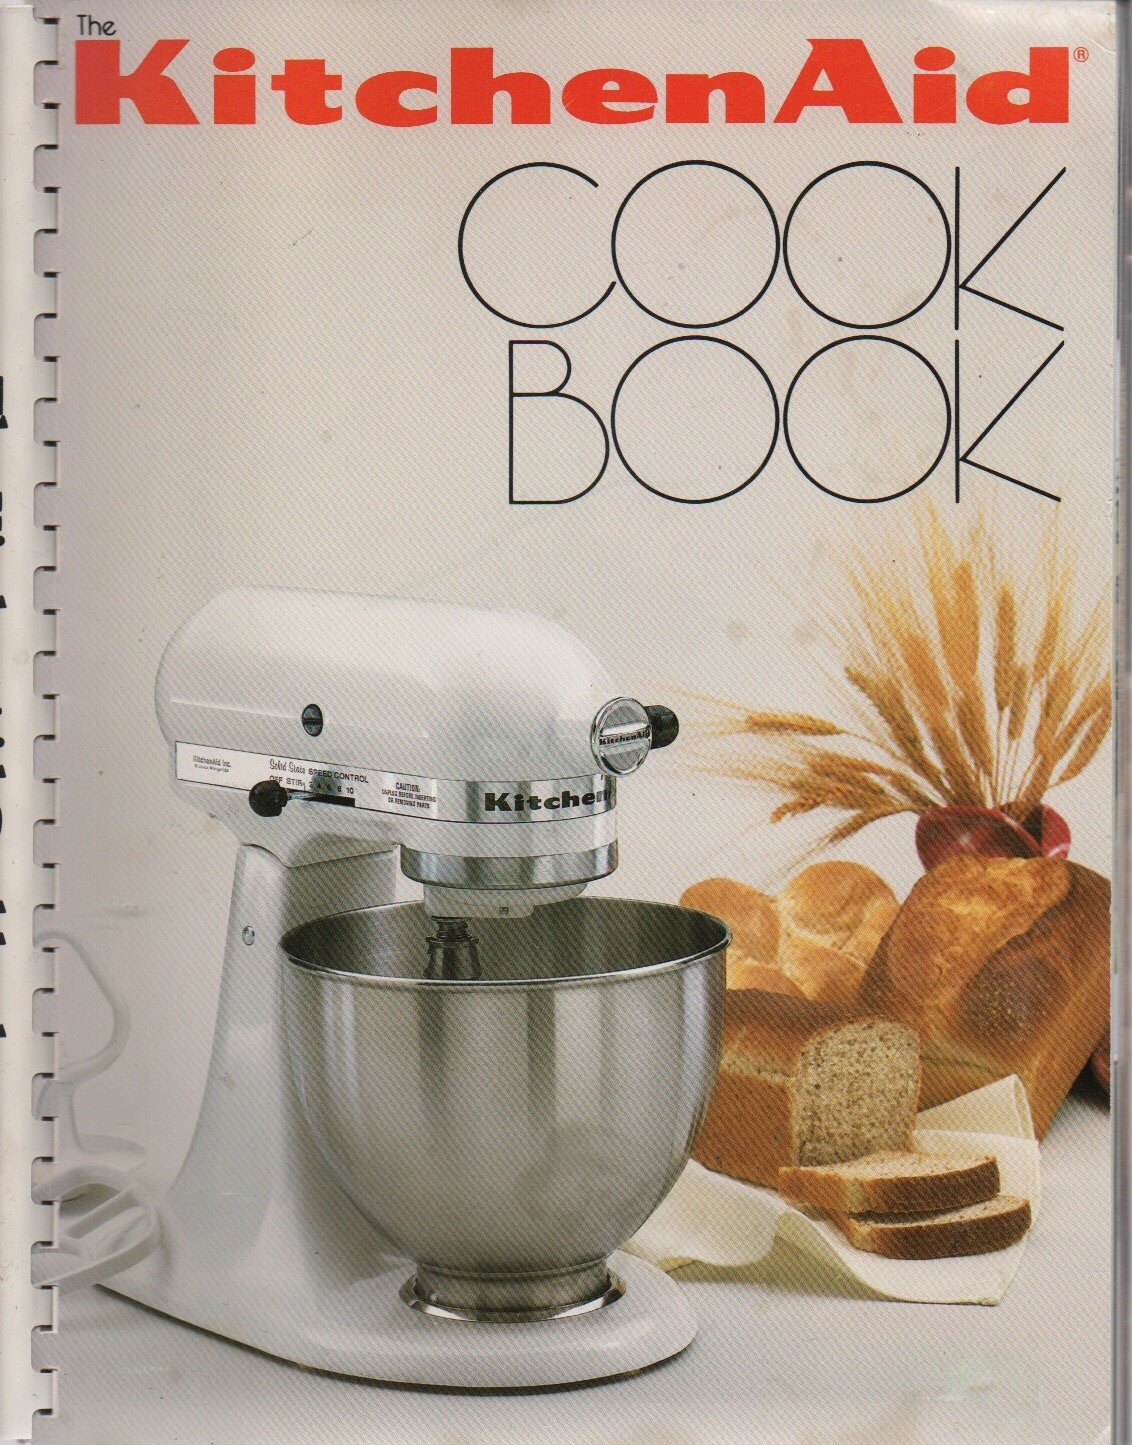 The KitchenAid Cookbook: 9780911974300: Amazon.com: Books on rival ice cream recipe book, ice cream magic recipe book, cuisinart ice cream recipe book, krups ice cream recipe book, ice cream maker recipe book, ice cream cocktail recipe book,